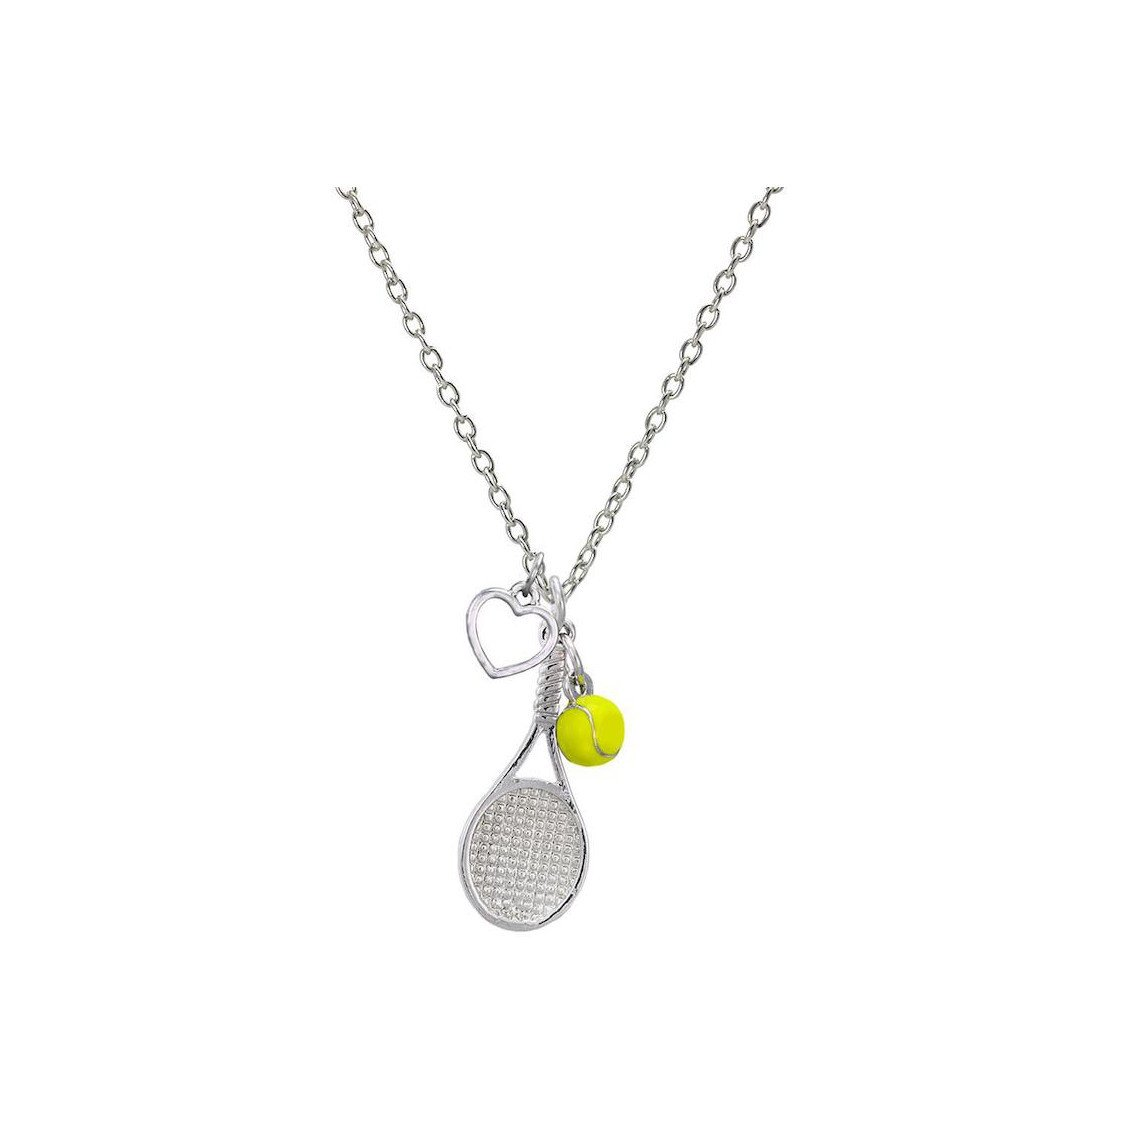 Tennis jewelry consisting of tennis necklace with racket, heart & tennis ball